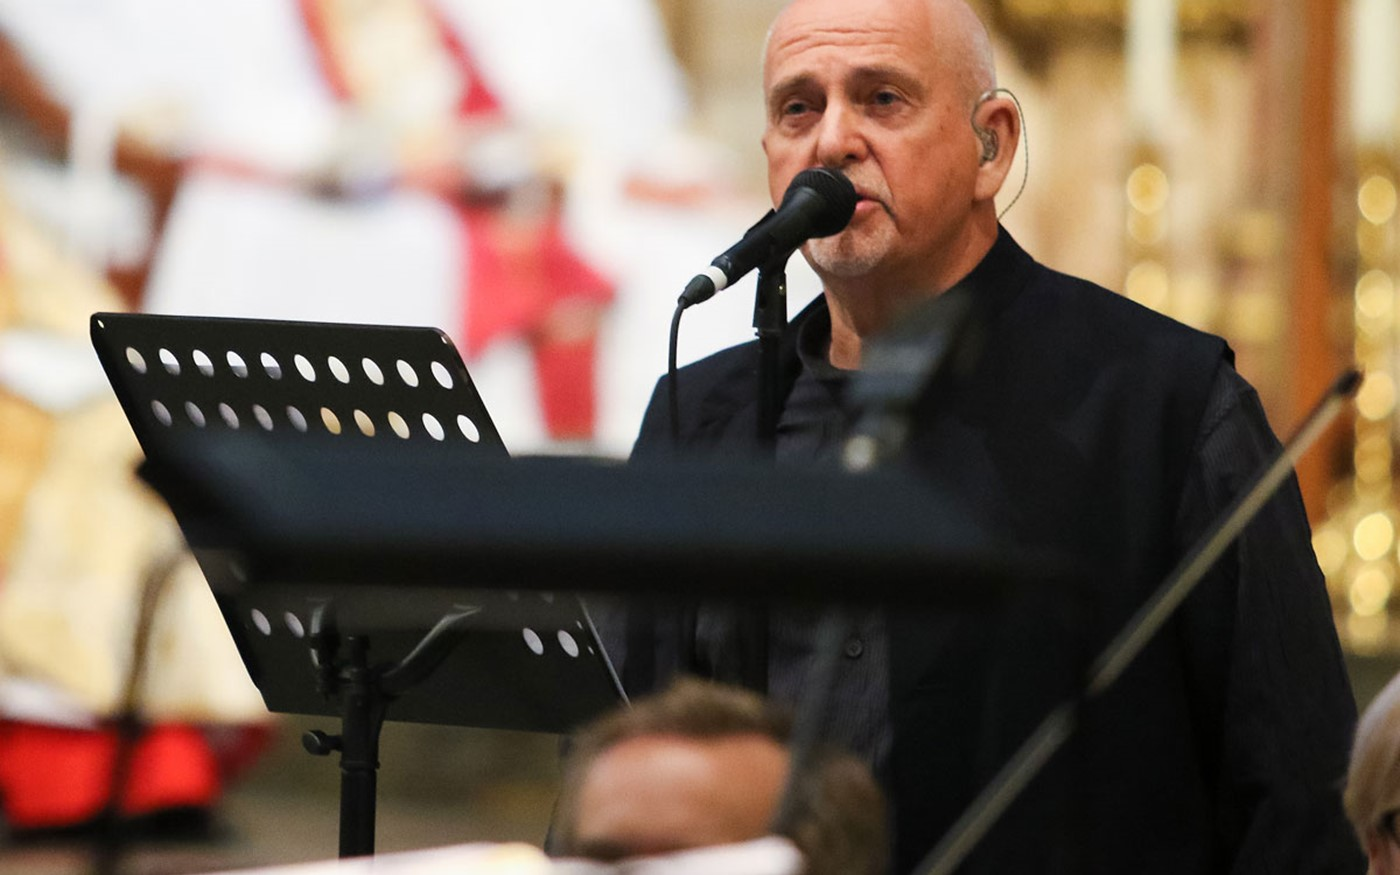 Peter Gabriel sings That'll Do by Randy Newman